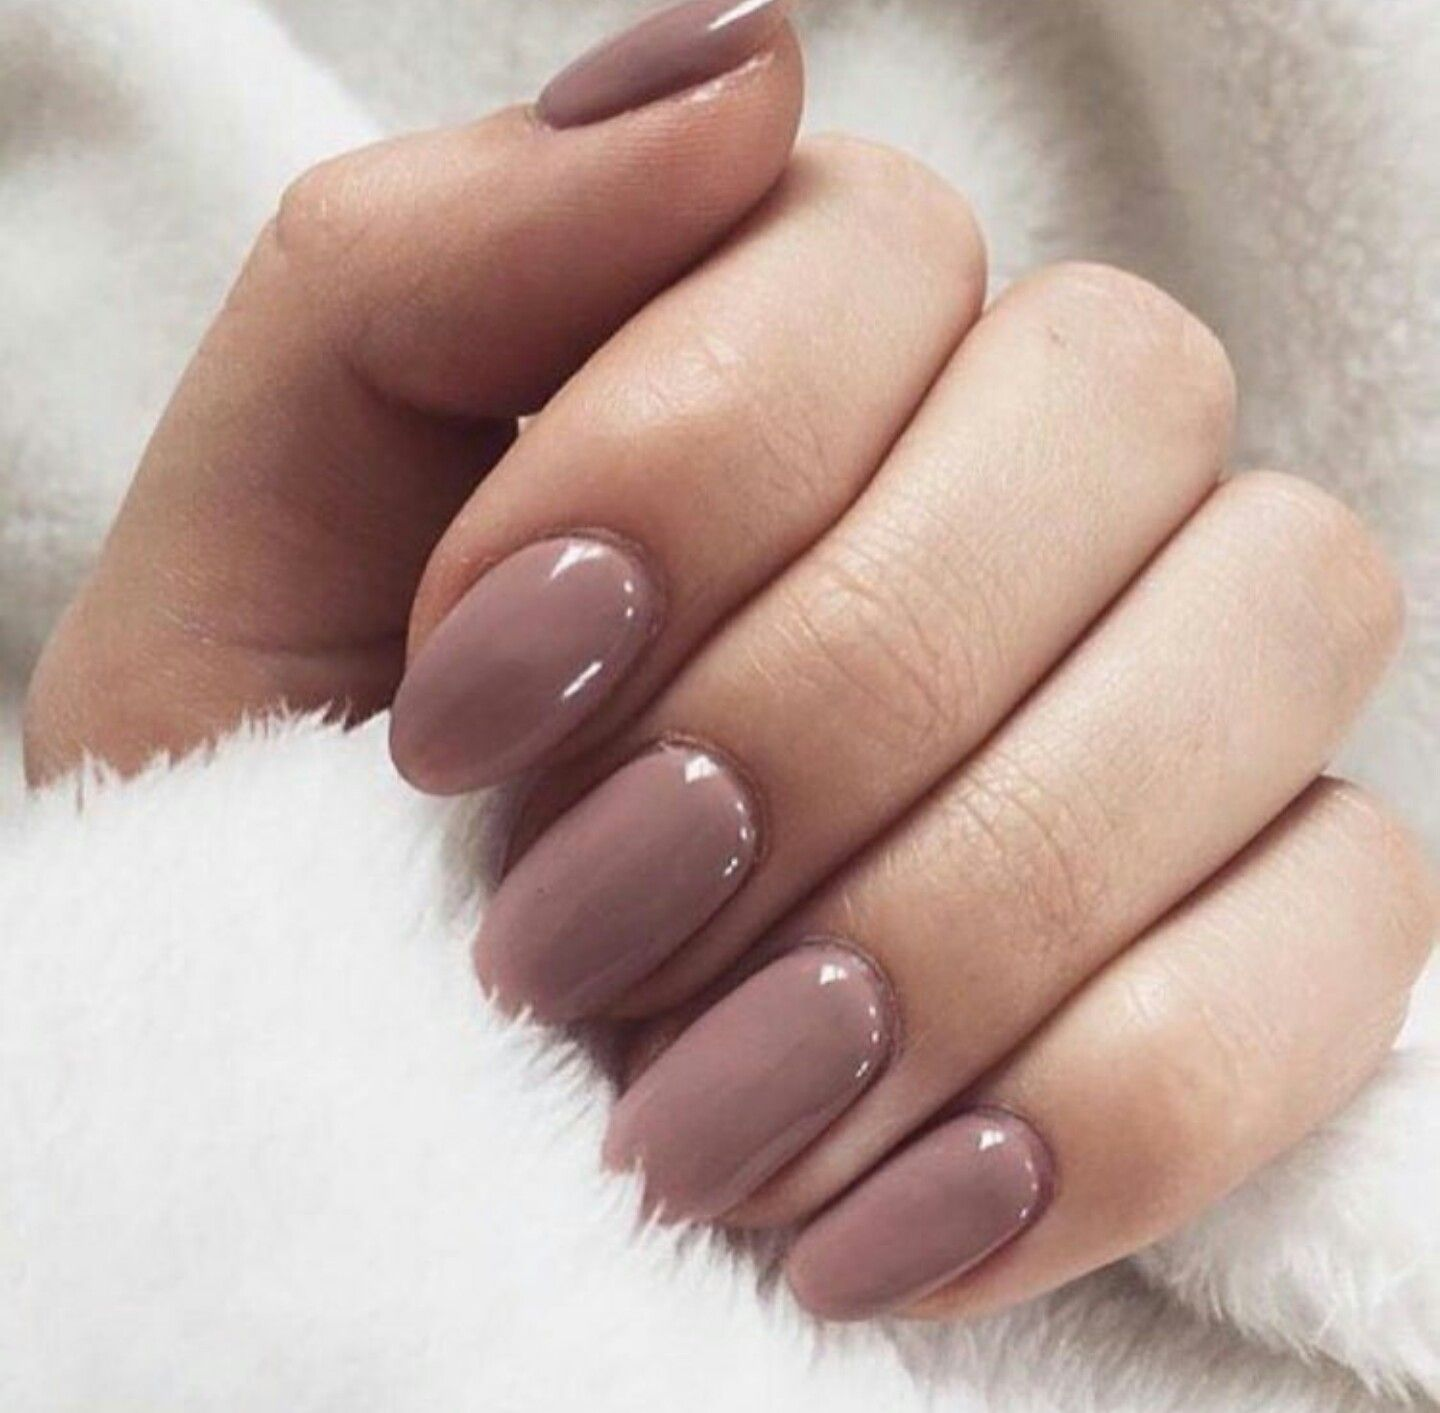 Dusty pink nails #dustypink Pinterest ~ @megglou | Nails | Pinterest ...